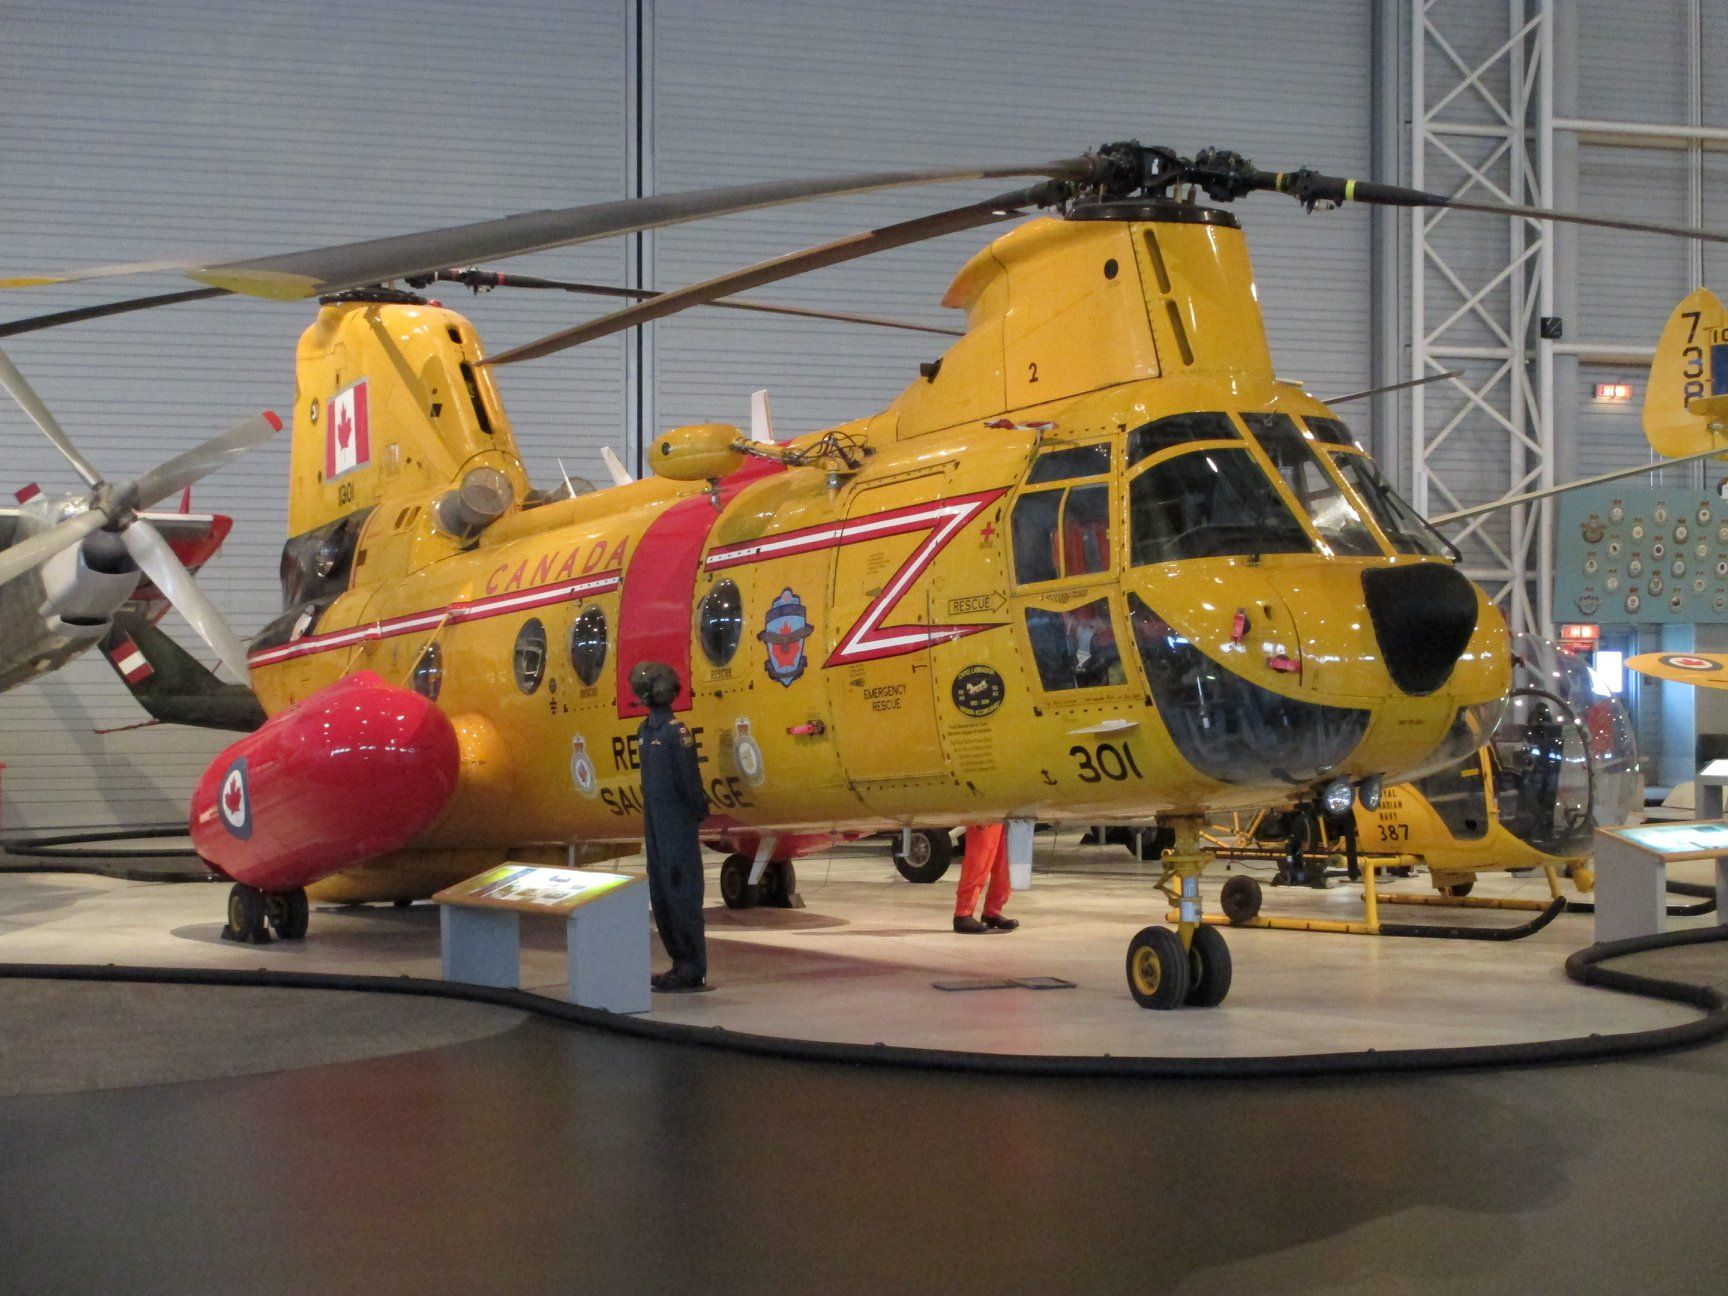 Boeing vertol ch113 labrador search and rescue helicopter